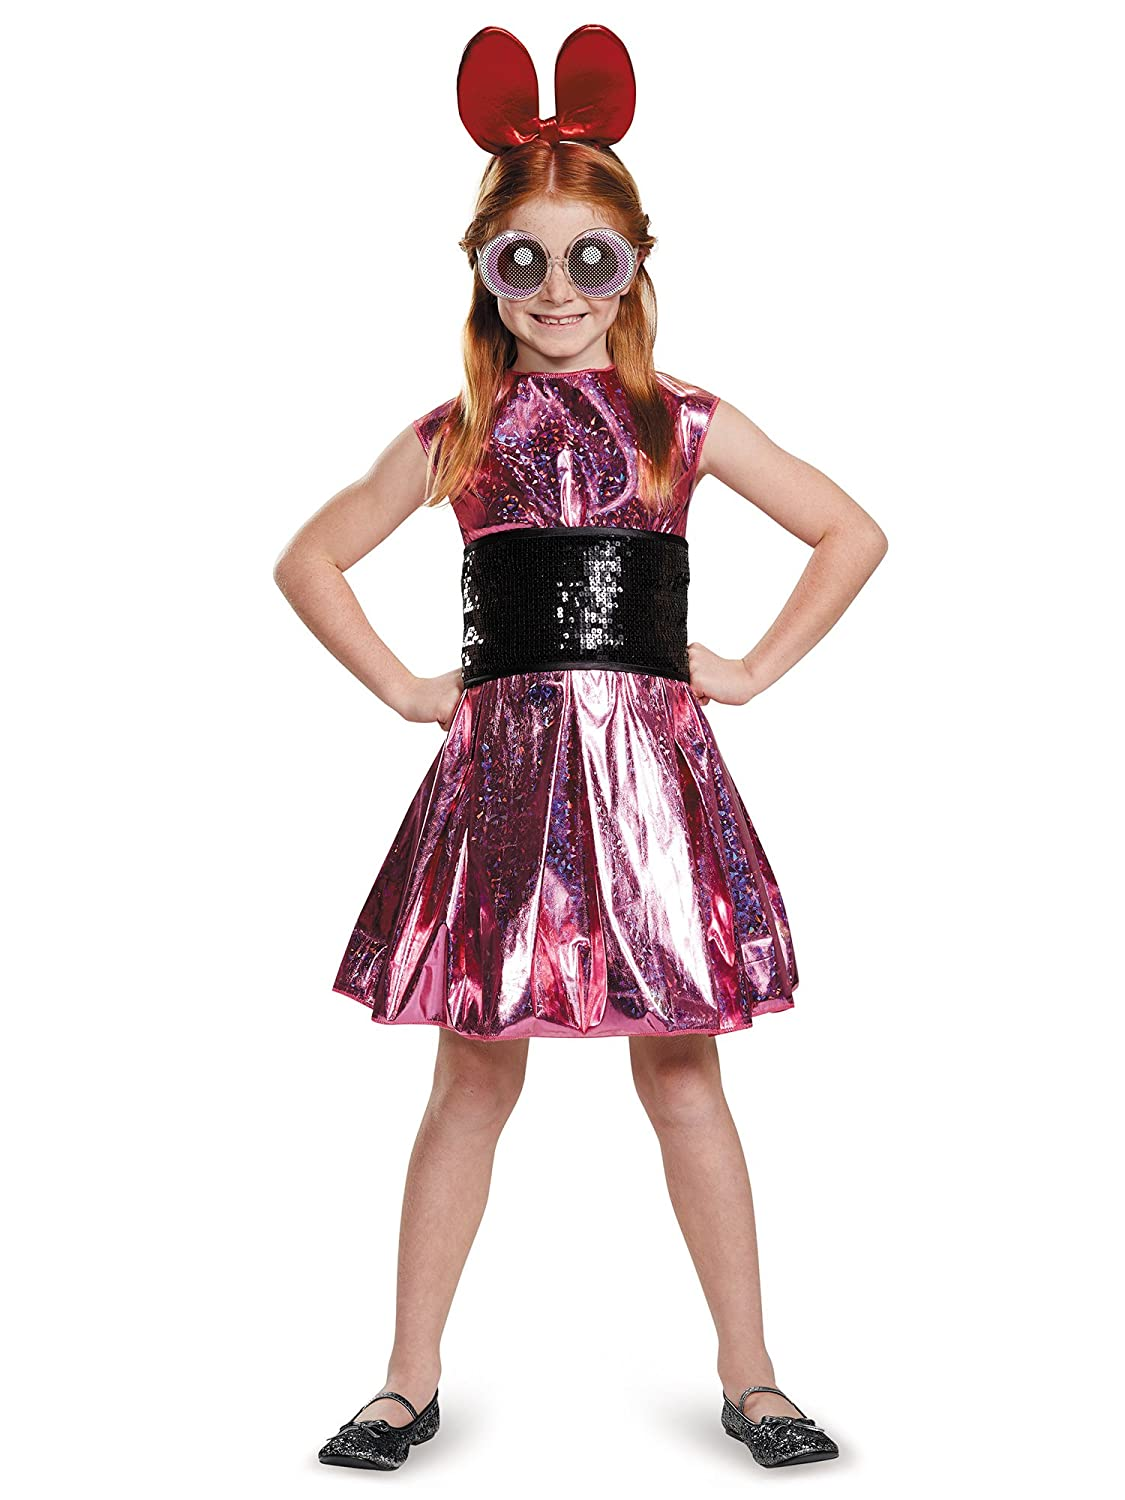 Disguise Blossom Deluxe Powerpuff Girls Cartoon Network Costume, Large/10-12 by Disguise